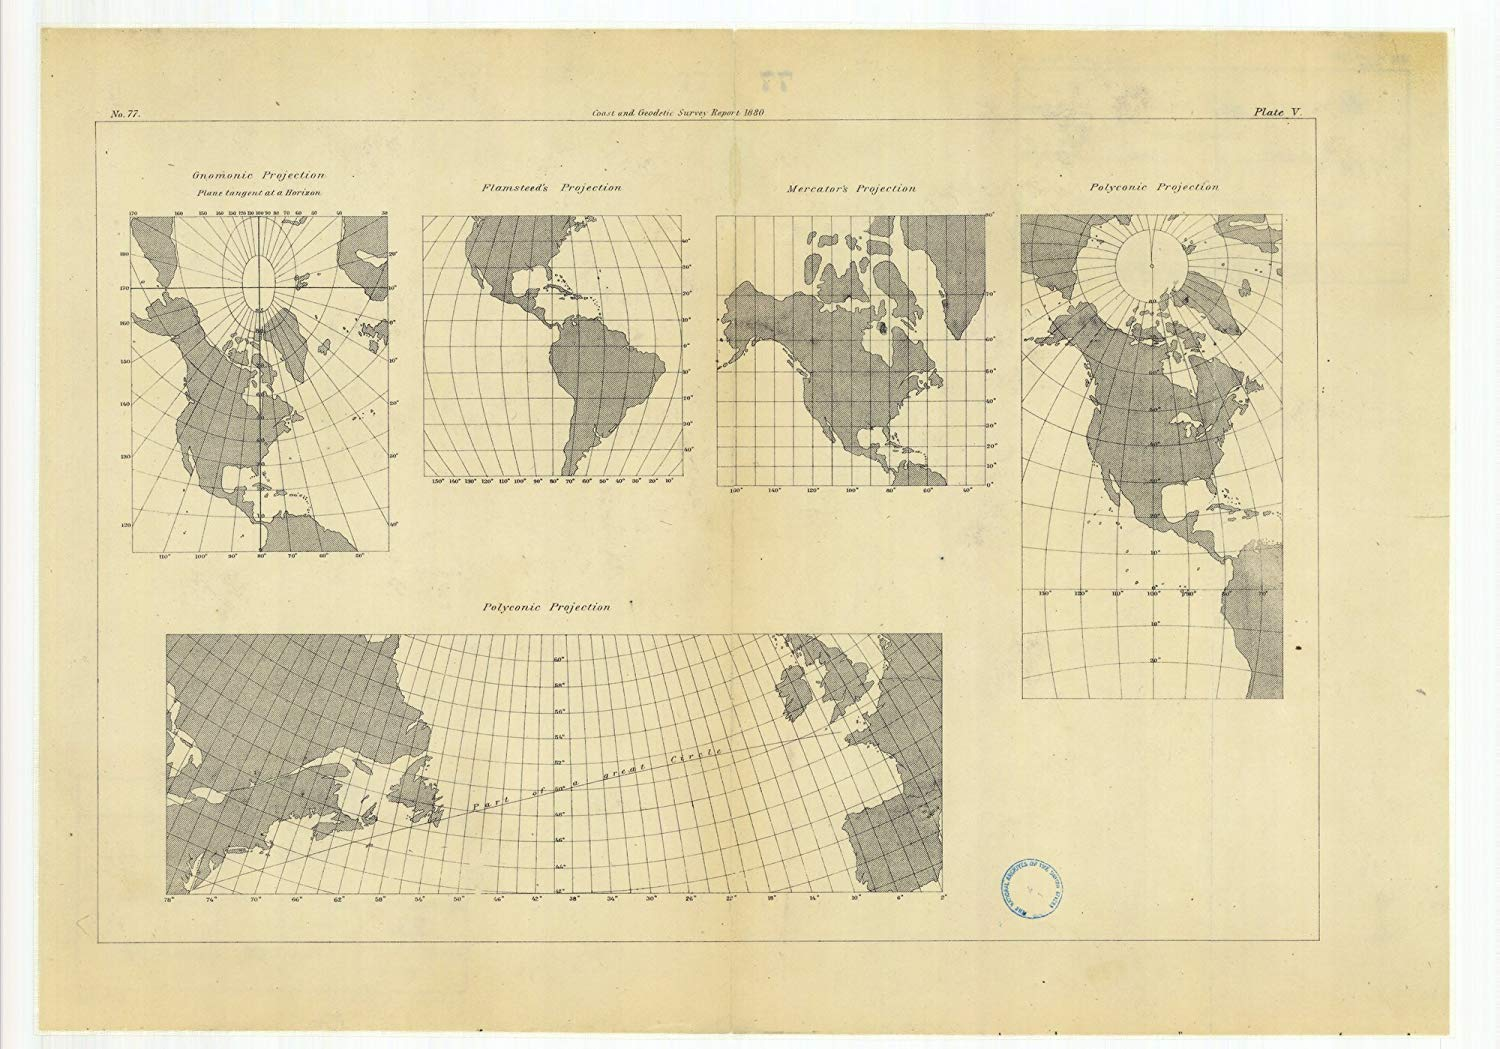 Vintography 8 x 12 inch 1880 US Old Nautical map Drawing Chart Gnomonic Projection Flamsteed's Projection, Mercator's Projection Polyconic Projections from US Coast & Geodetic Survey x5817